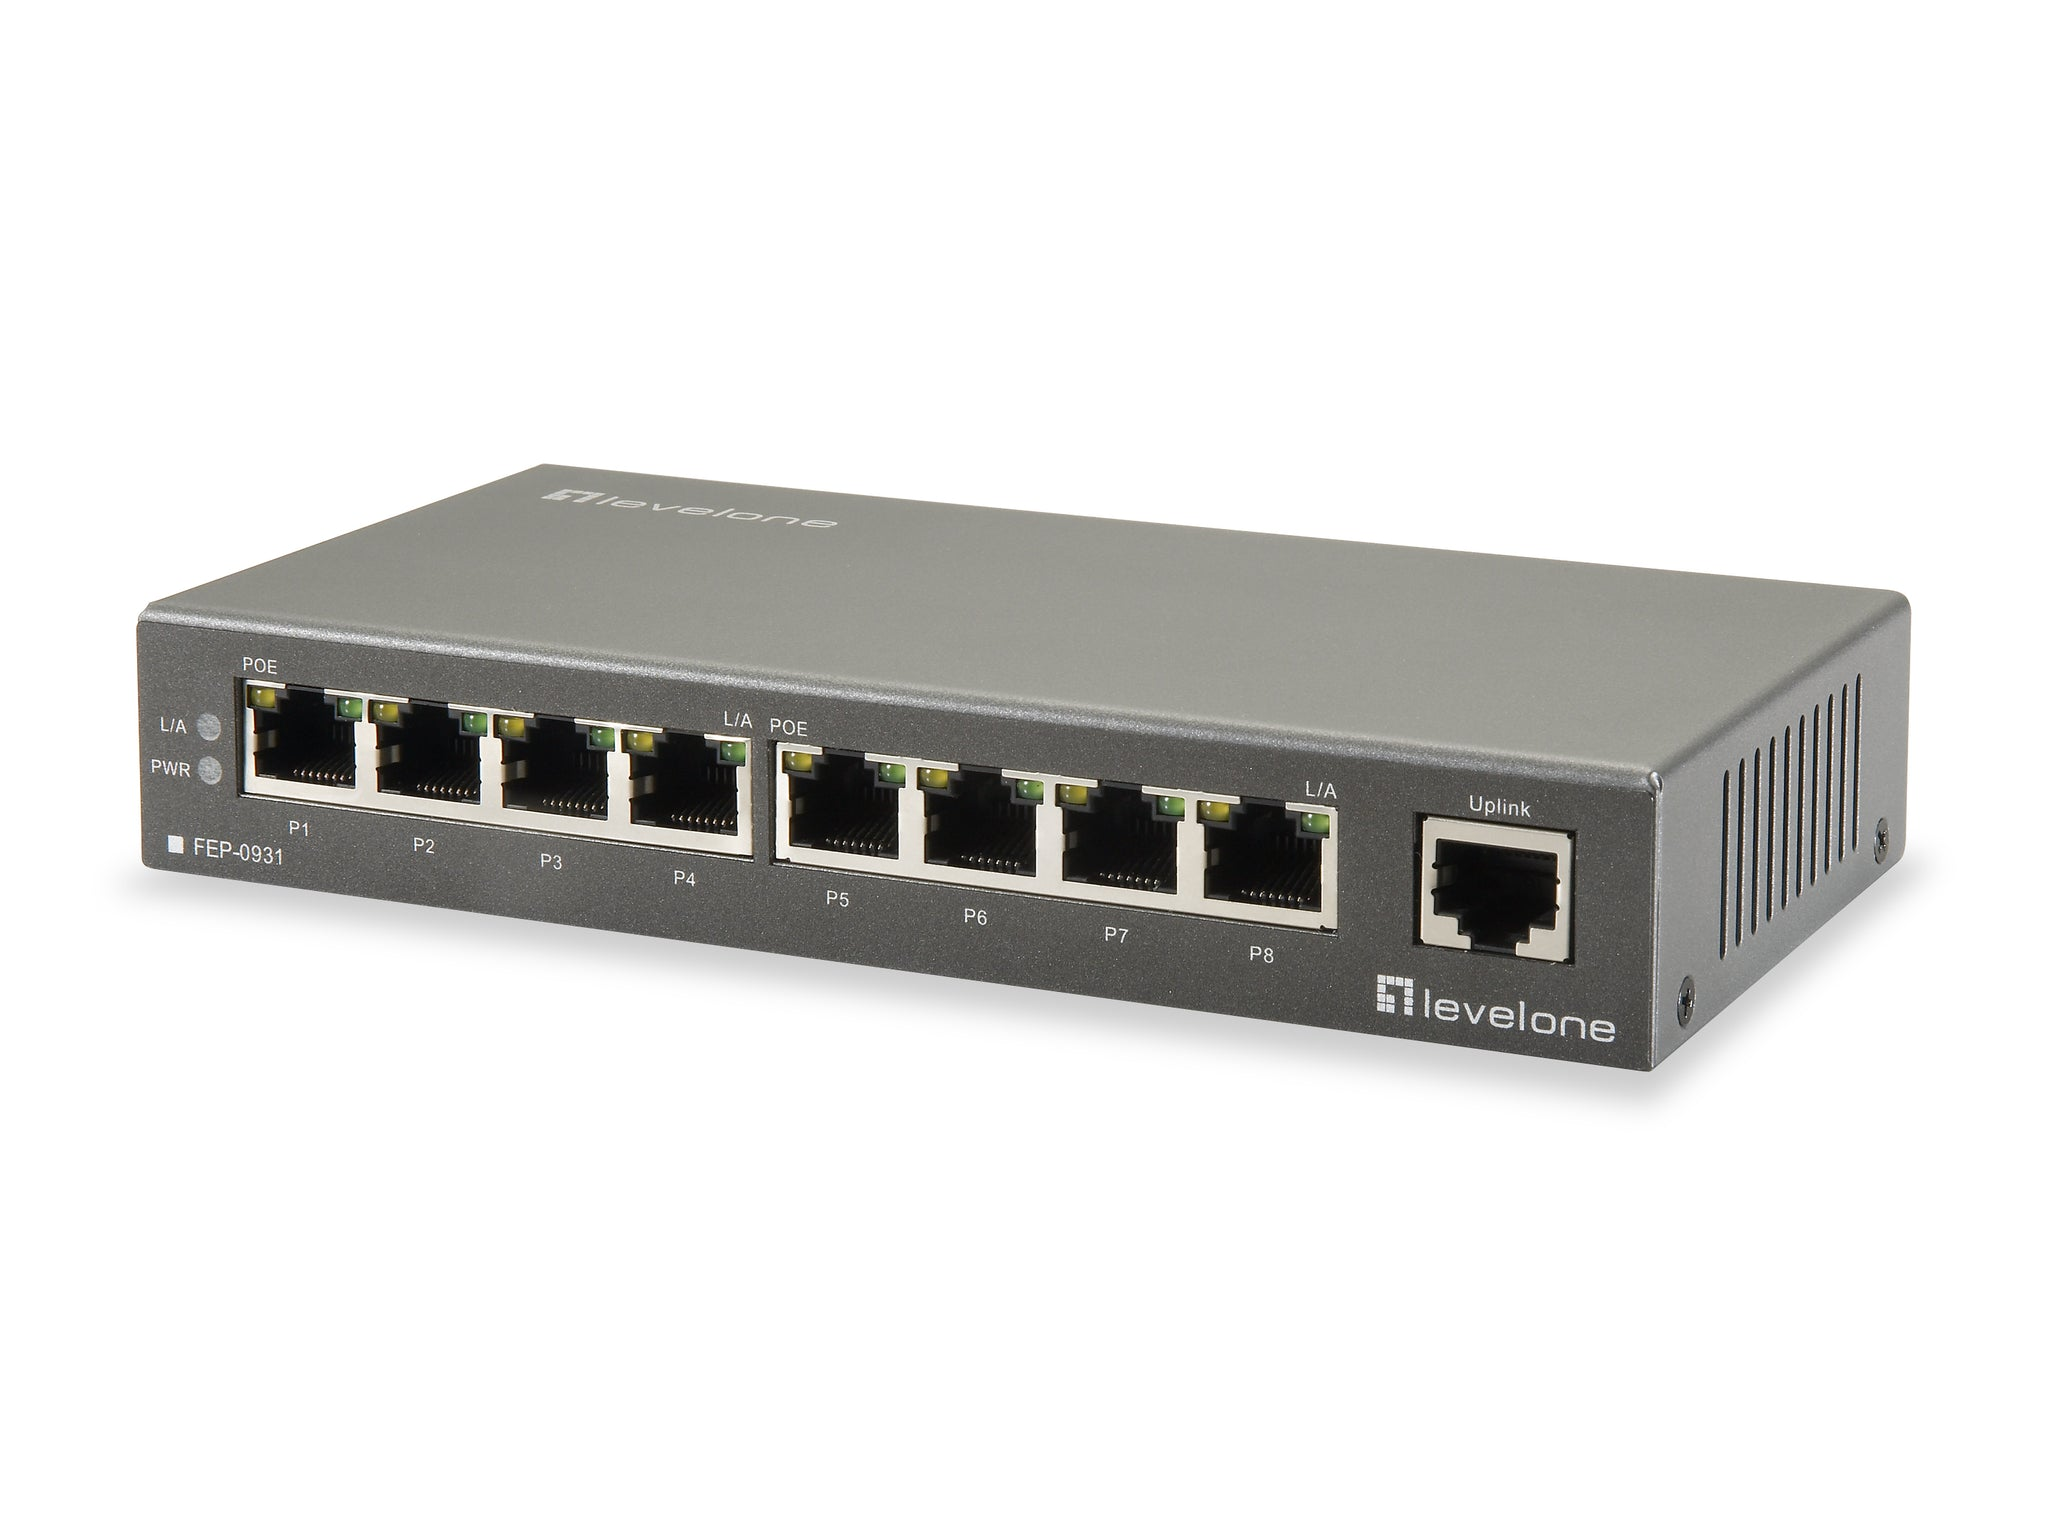 FEP-0931 9-Port Fast Ethernet PoE Switch, 250m, 802.3at/af PoE, 120W, 8 PoE Outputs